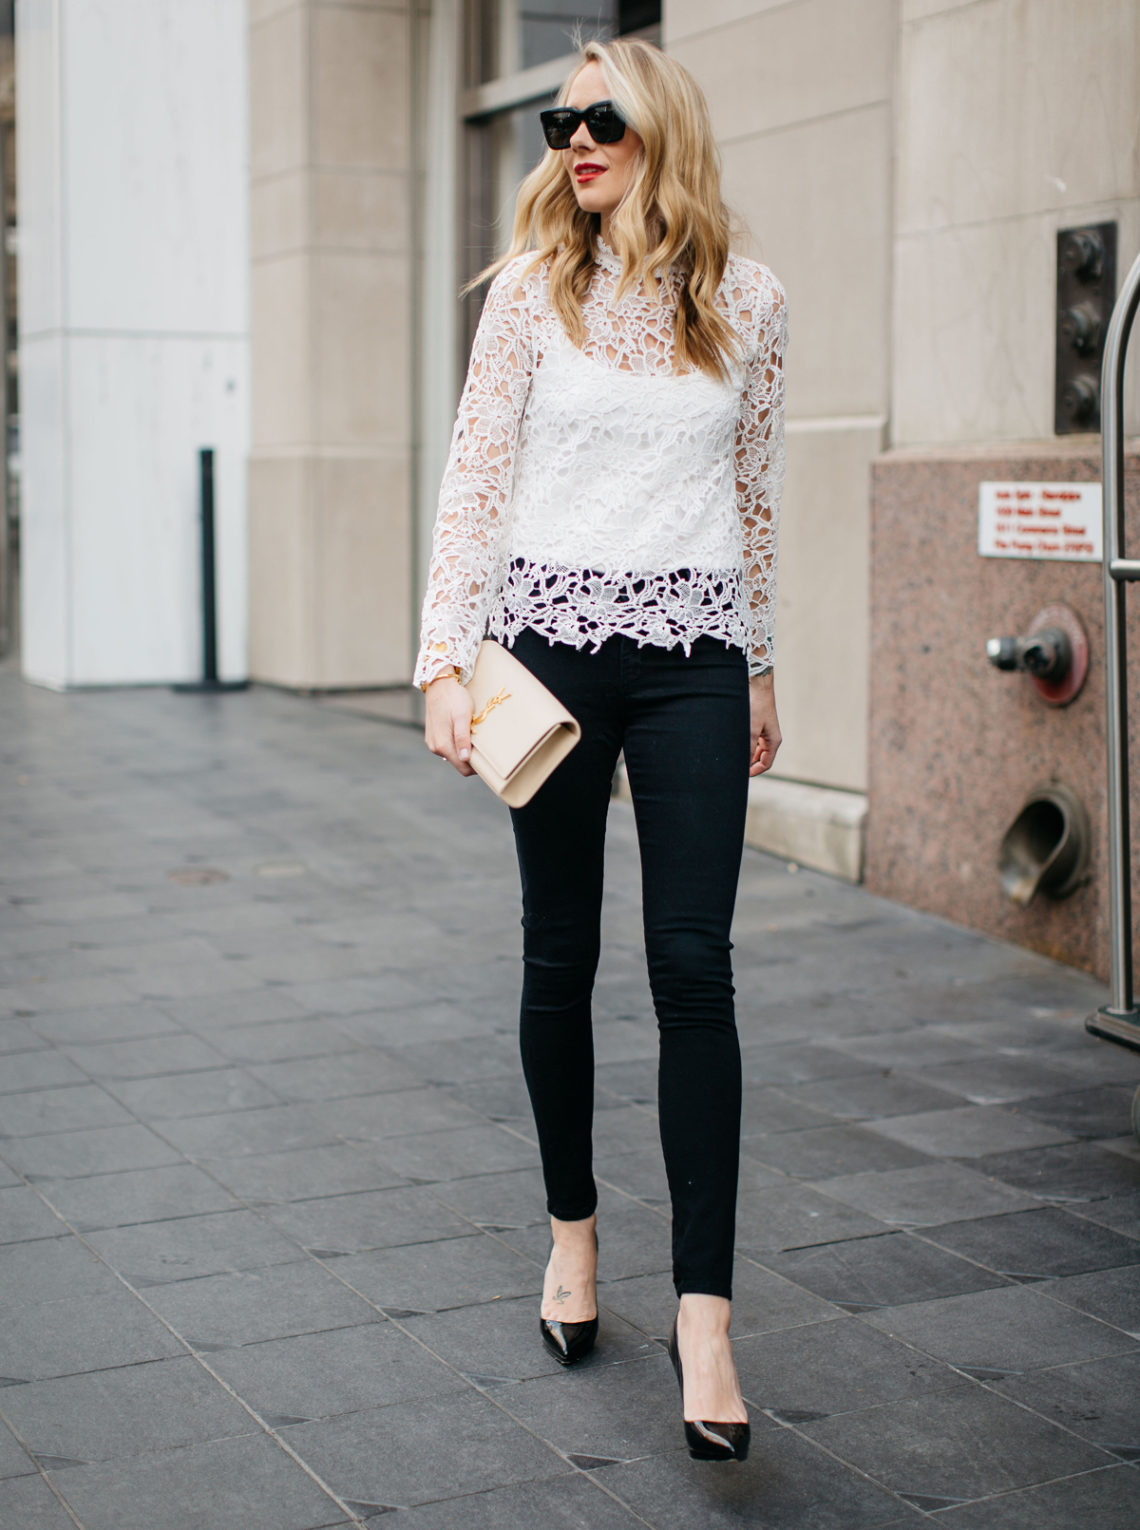 Fall Outfit, Winter Outfit, White Lace Long Sleeve Top, Black Skinny Jeans, Christian Louboutin Black Pumps, Saint Laurent Monogram Clutch